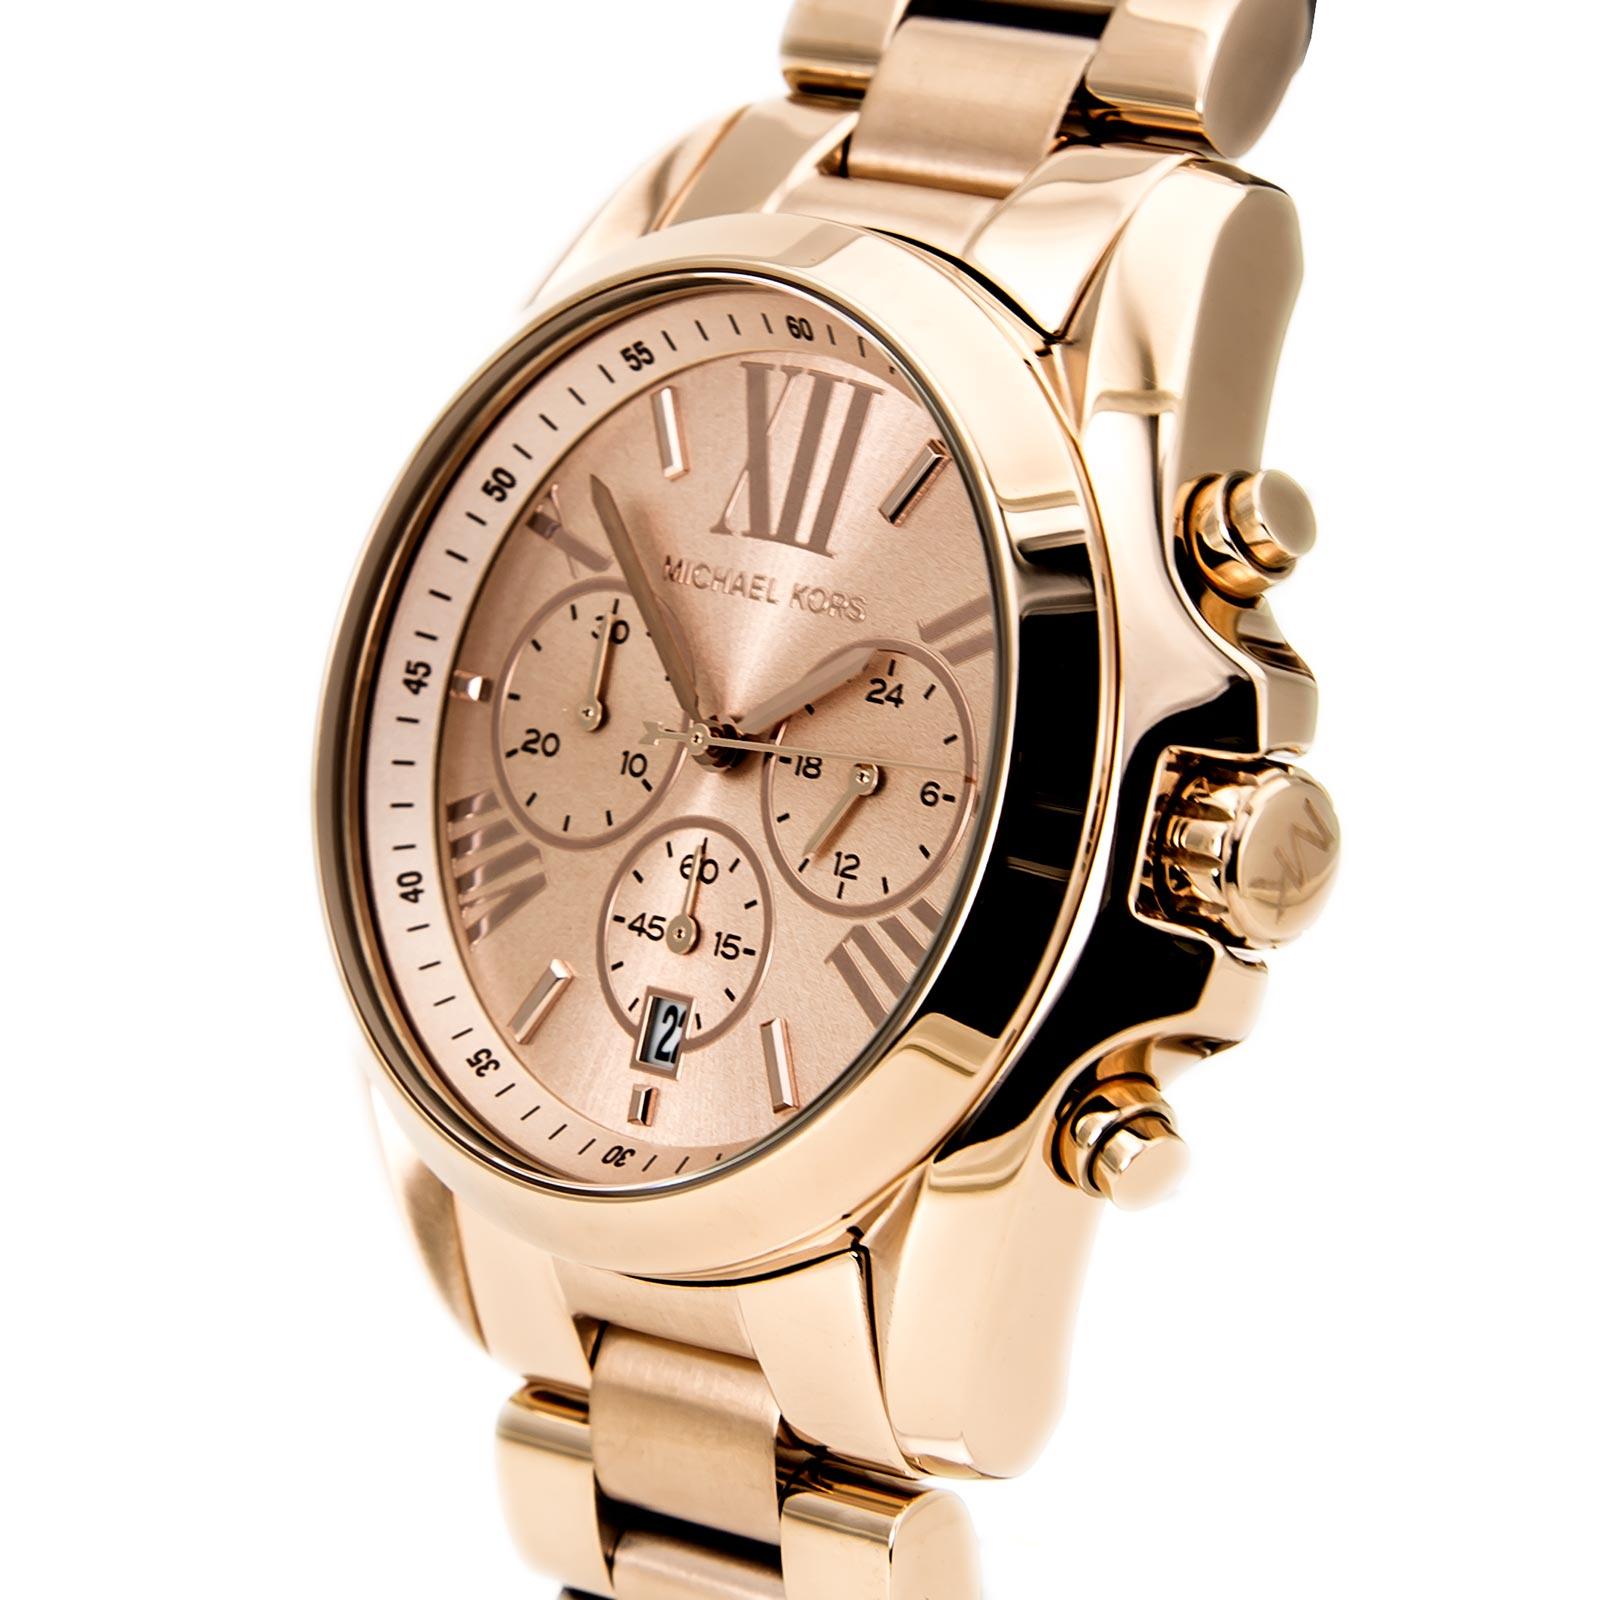 a97ec1d37a50 MICHAEL KORS MK5503 LADIES ROSE GOLD BRADSHAW WATCH - 2 YEAR WARRANTY